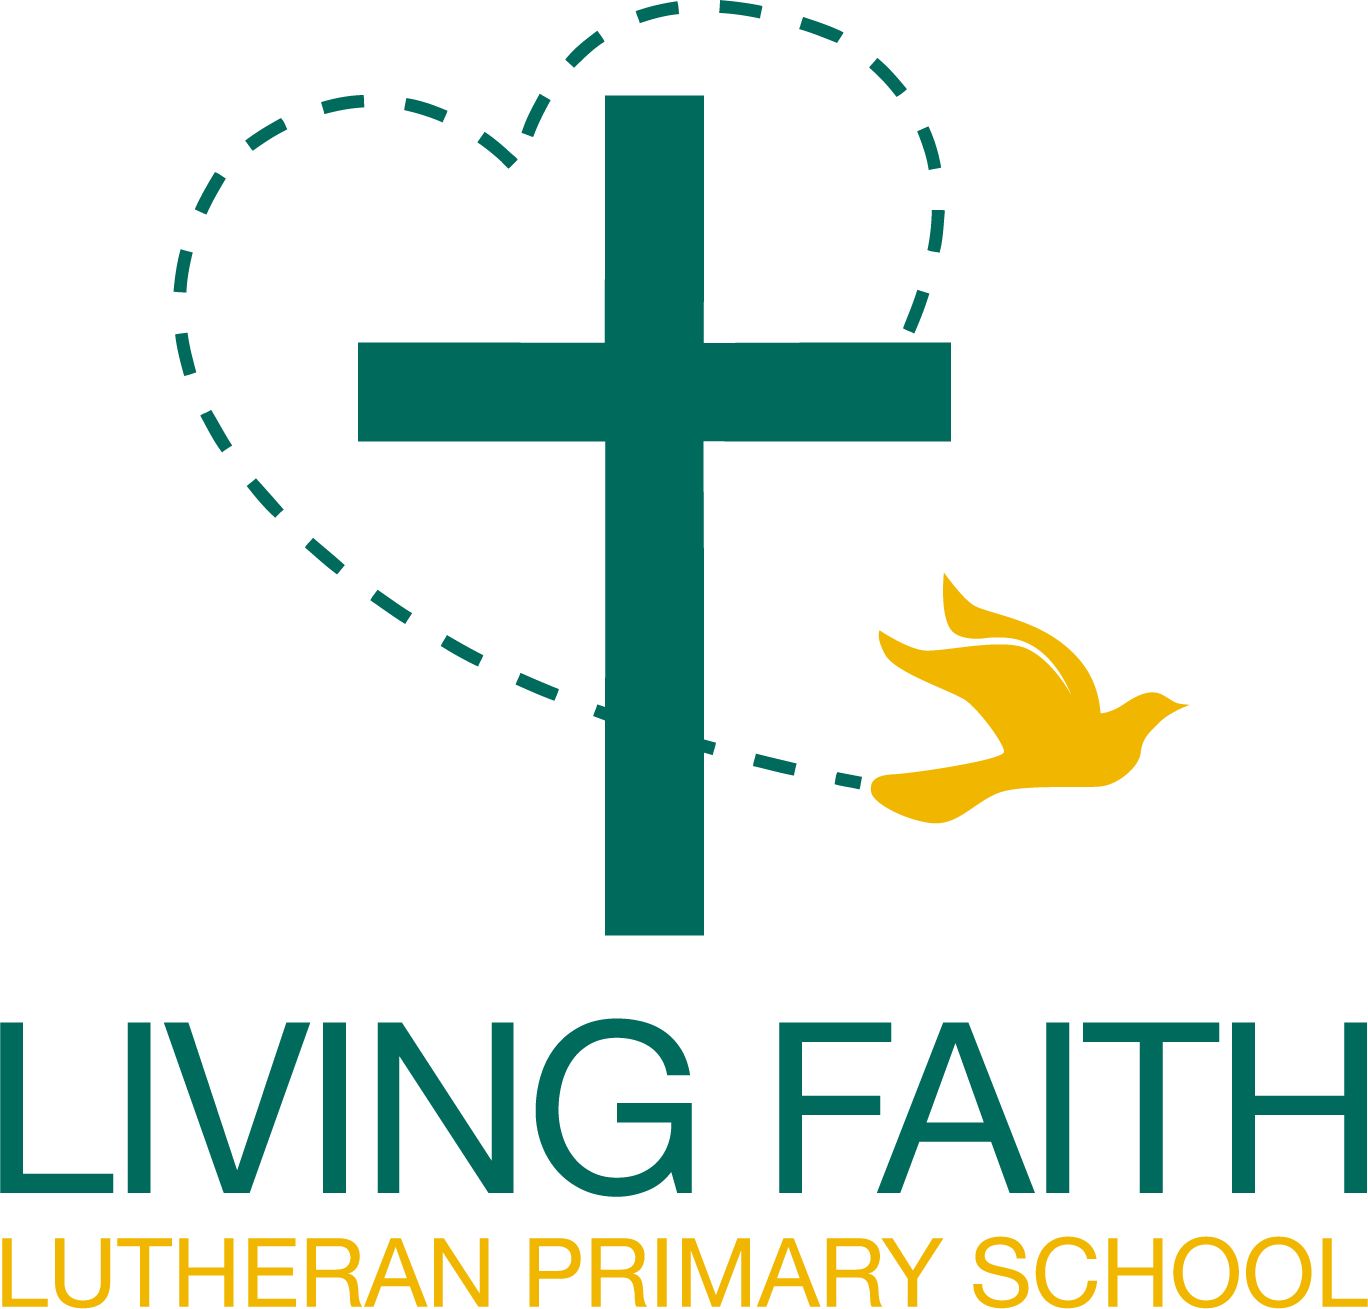 Living-Faith-ID-CommonUse.png?mtime=20190719095425#asset:2600